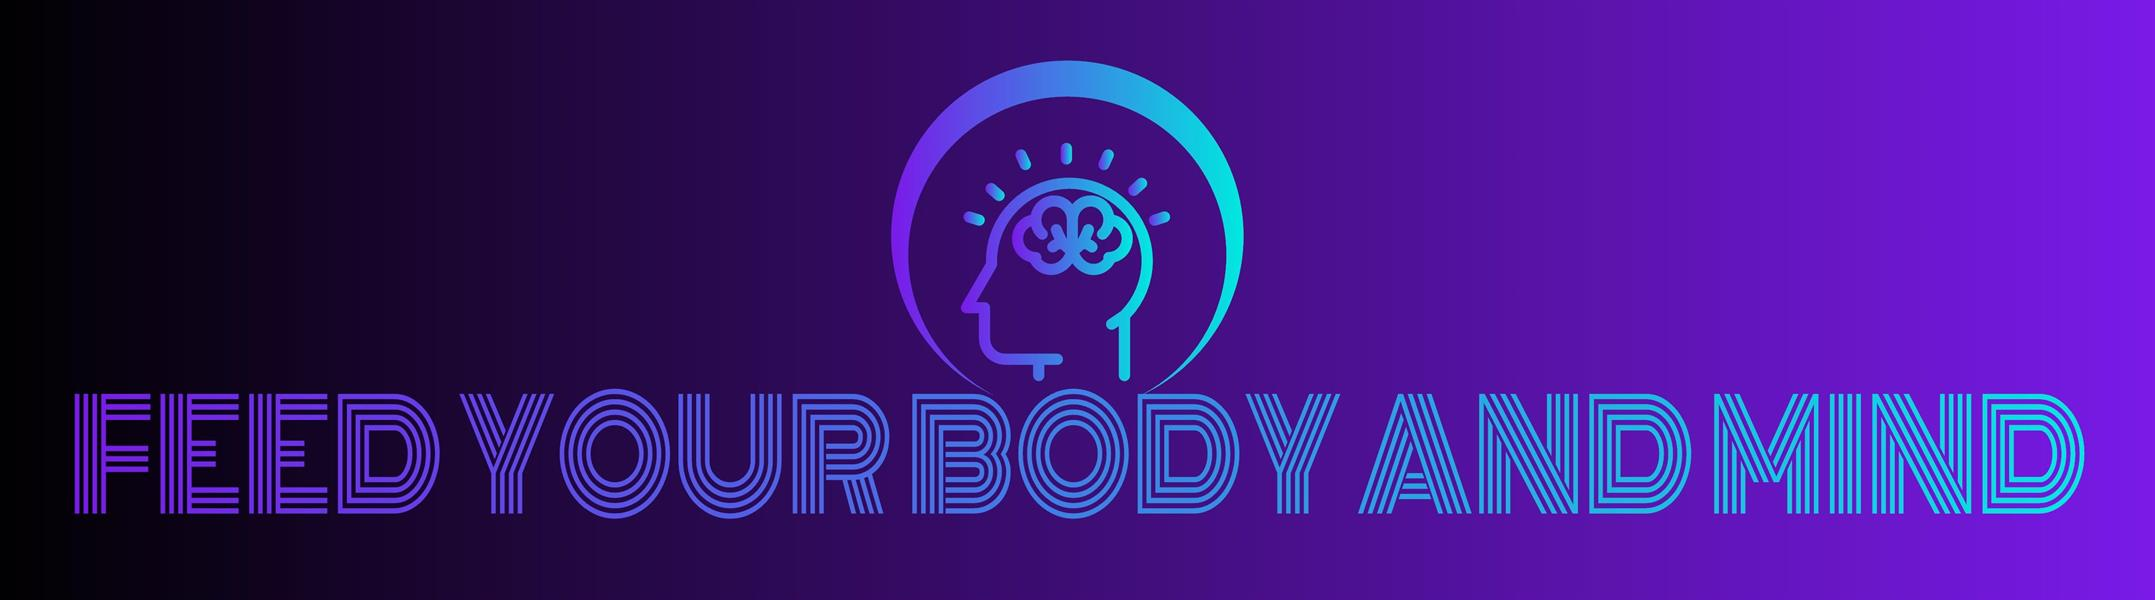 Feed Your Body and Mind LLC